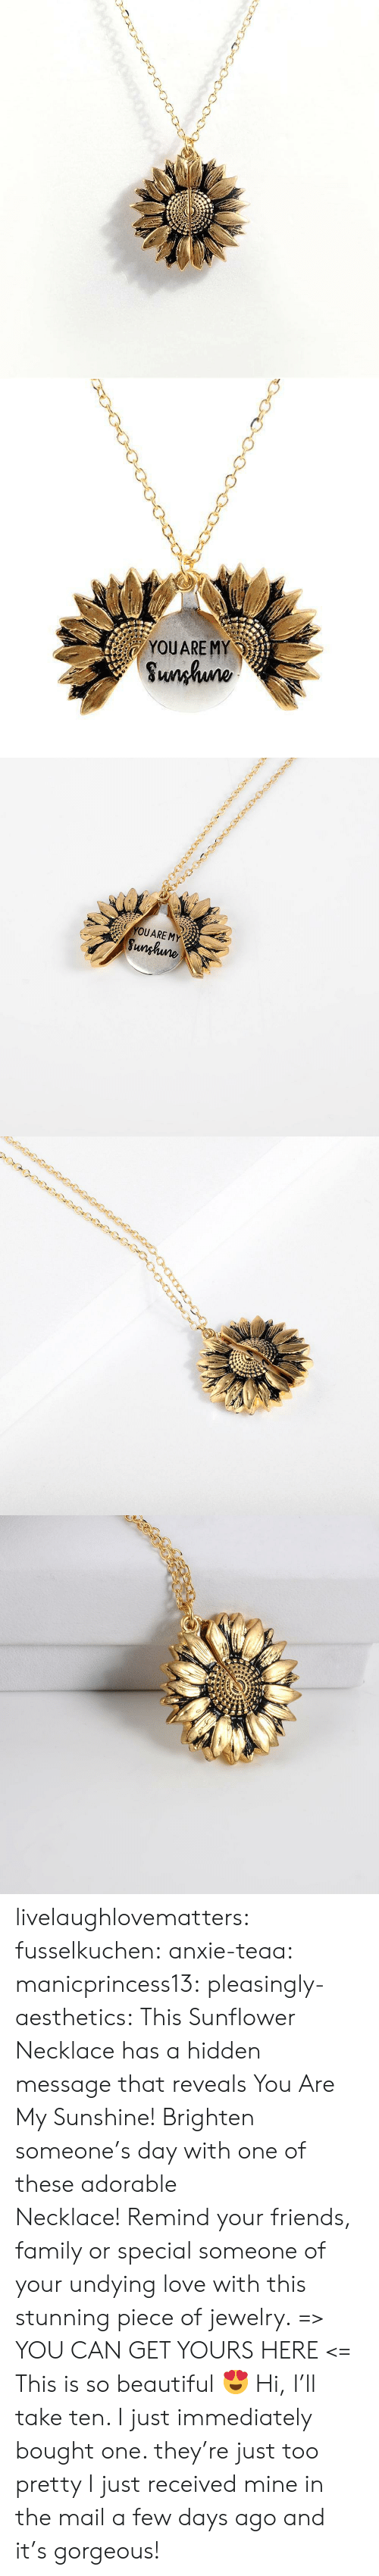 too pretty: YOUARE MY  Sunhuno   YOUARE MY  Sunghune livelaughlovematters: fusselkuchen:  anxie-teaa:   manicprincess13:   pleasingly-aesthetics:  This Sunflower Necklace has a hidden message that reveals You Are My Sunshine! Brighten someone's day with one of these adorable Necklace!Remind your friends, family or special someone of your undying love with this stunning piece of jewelry. => YOU CAN GET YOURS HERE <=   This is so beautiful 😍    Hi, I'll take ten.    I just immediately bought one. they're just too pretty   I just received mine in the mail a few days ago and it's gorgeous!